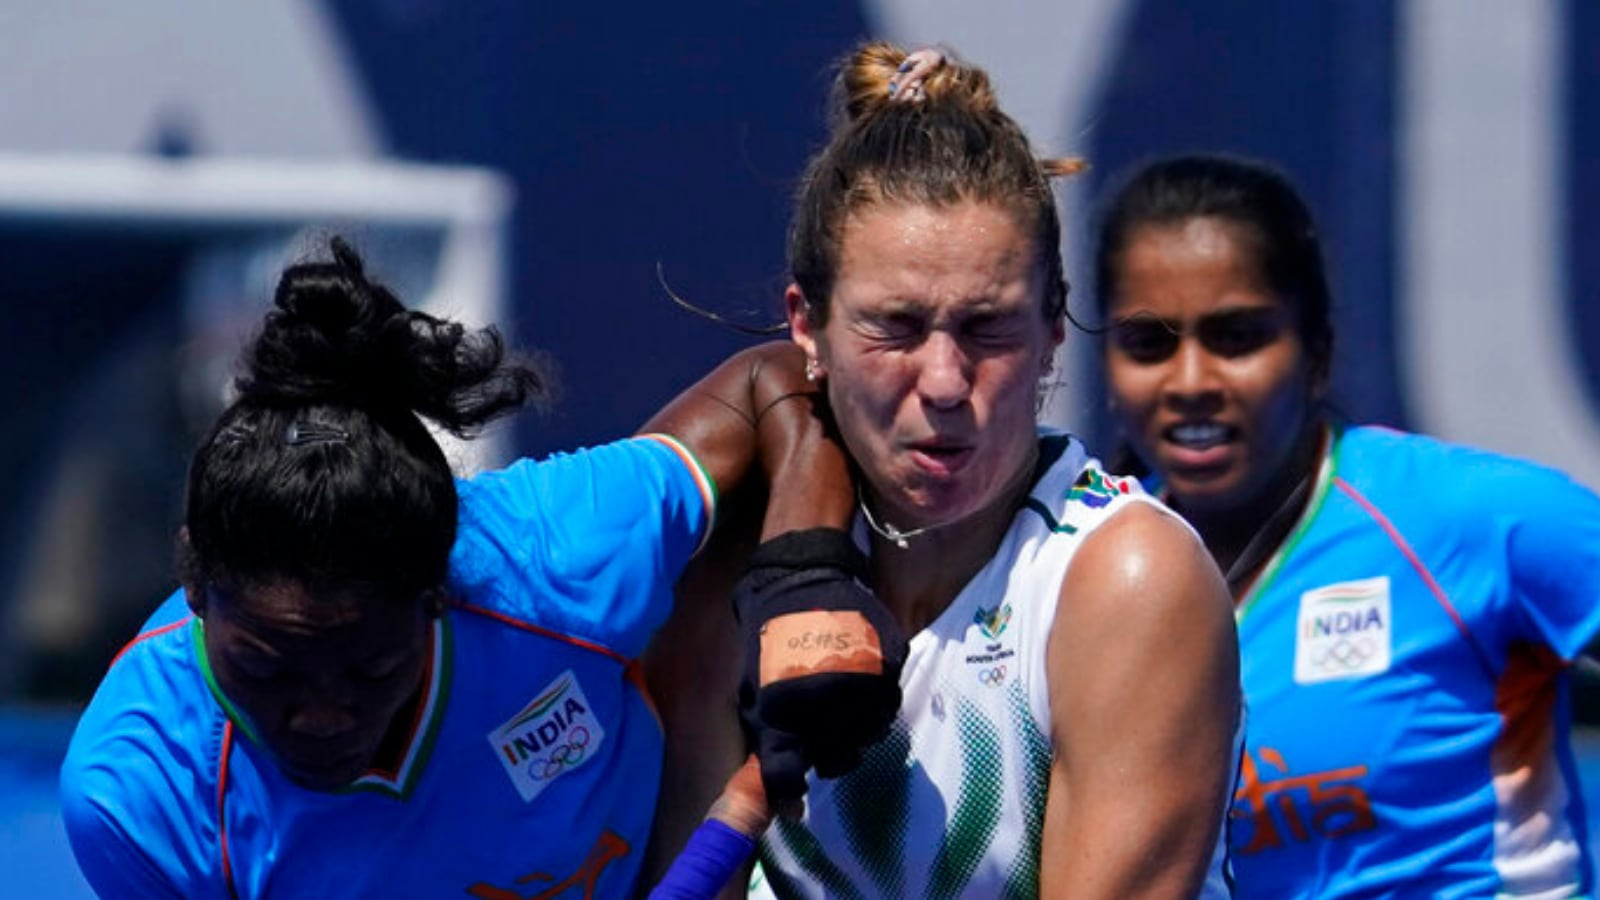 Tokyo Olympics: India Women's Hockey Team Beat South Africa 4-3 to Keep Quarter-final Hopes Alive